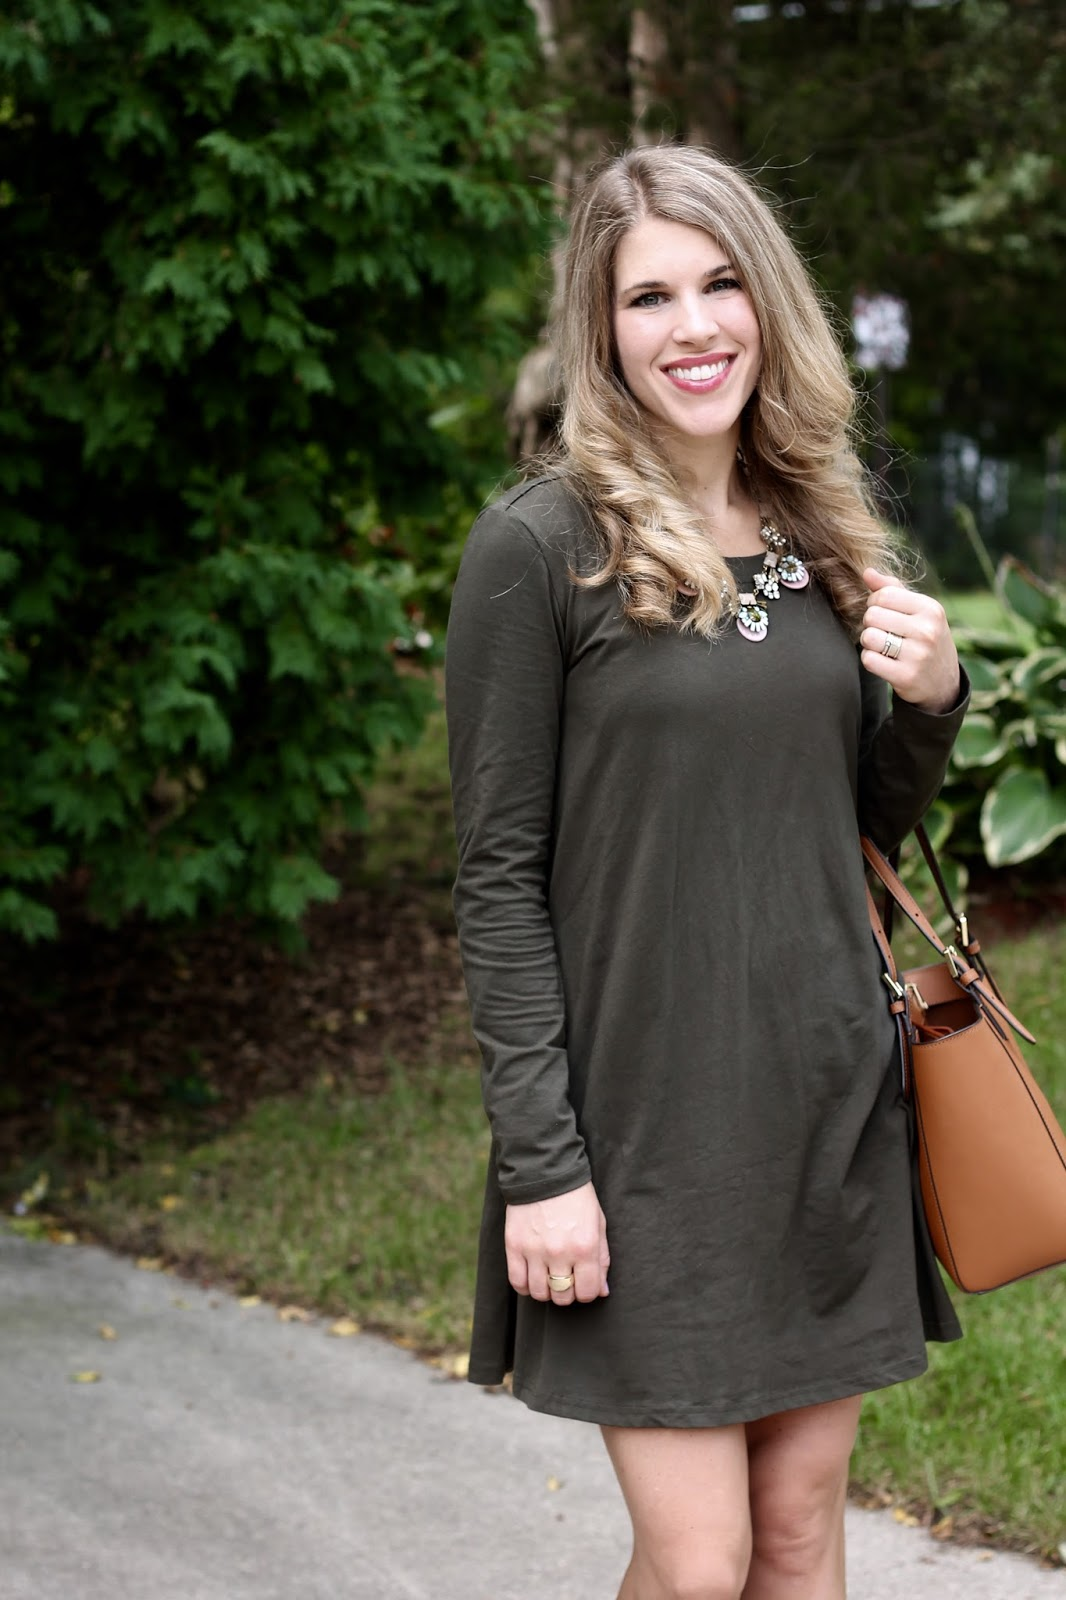 Olive swing dress, blush lace up flats, statement necklace, Tory Burch tote